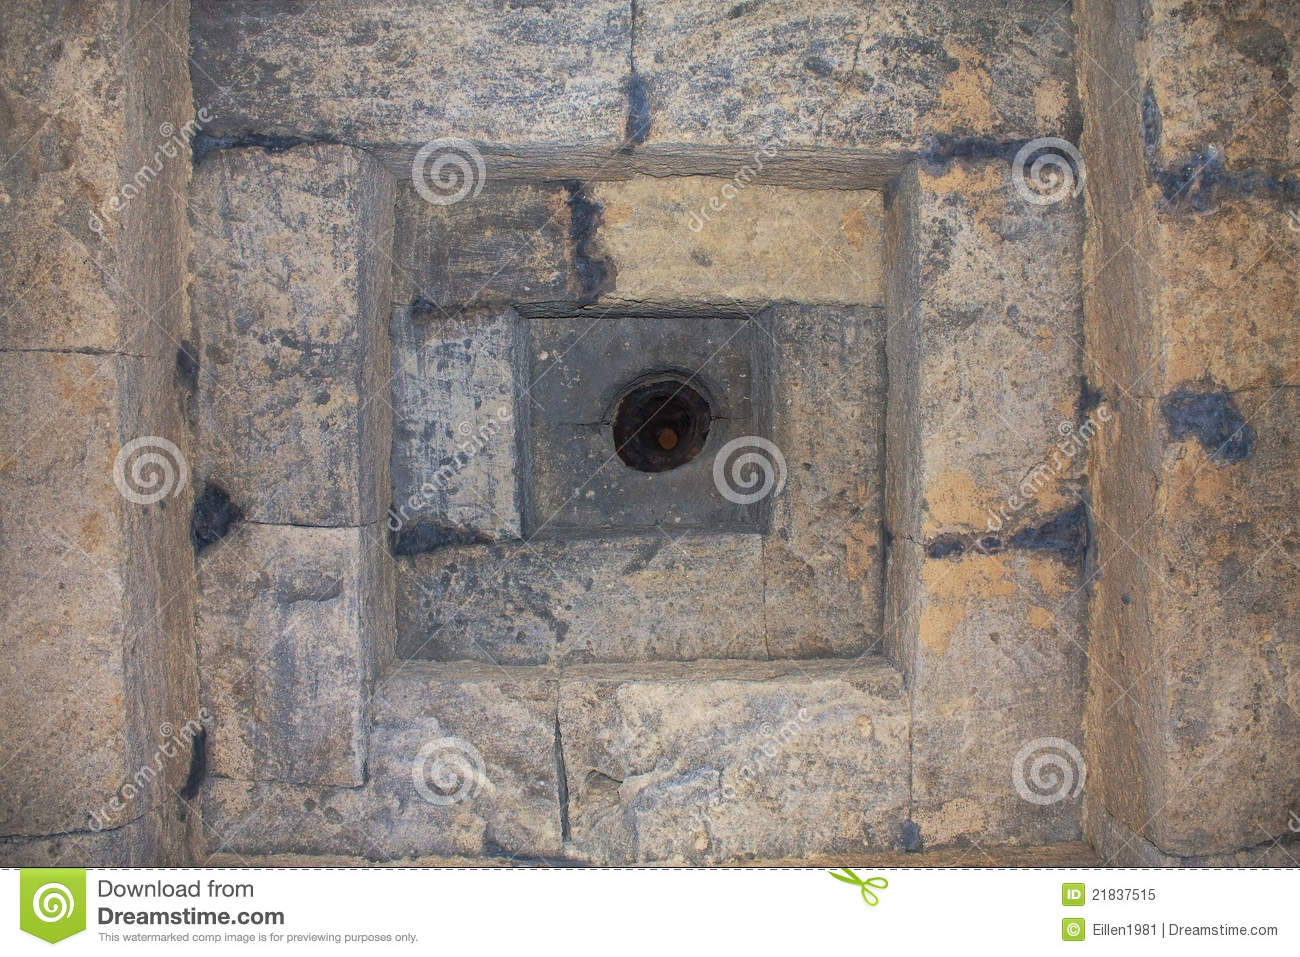 Closed Tomb Image http://www.dreamstime.com/royalty-free-stock-photo-close-up-royal-tomb-ceiling-texture-image21837515